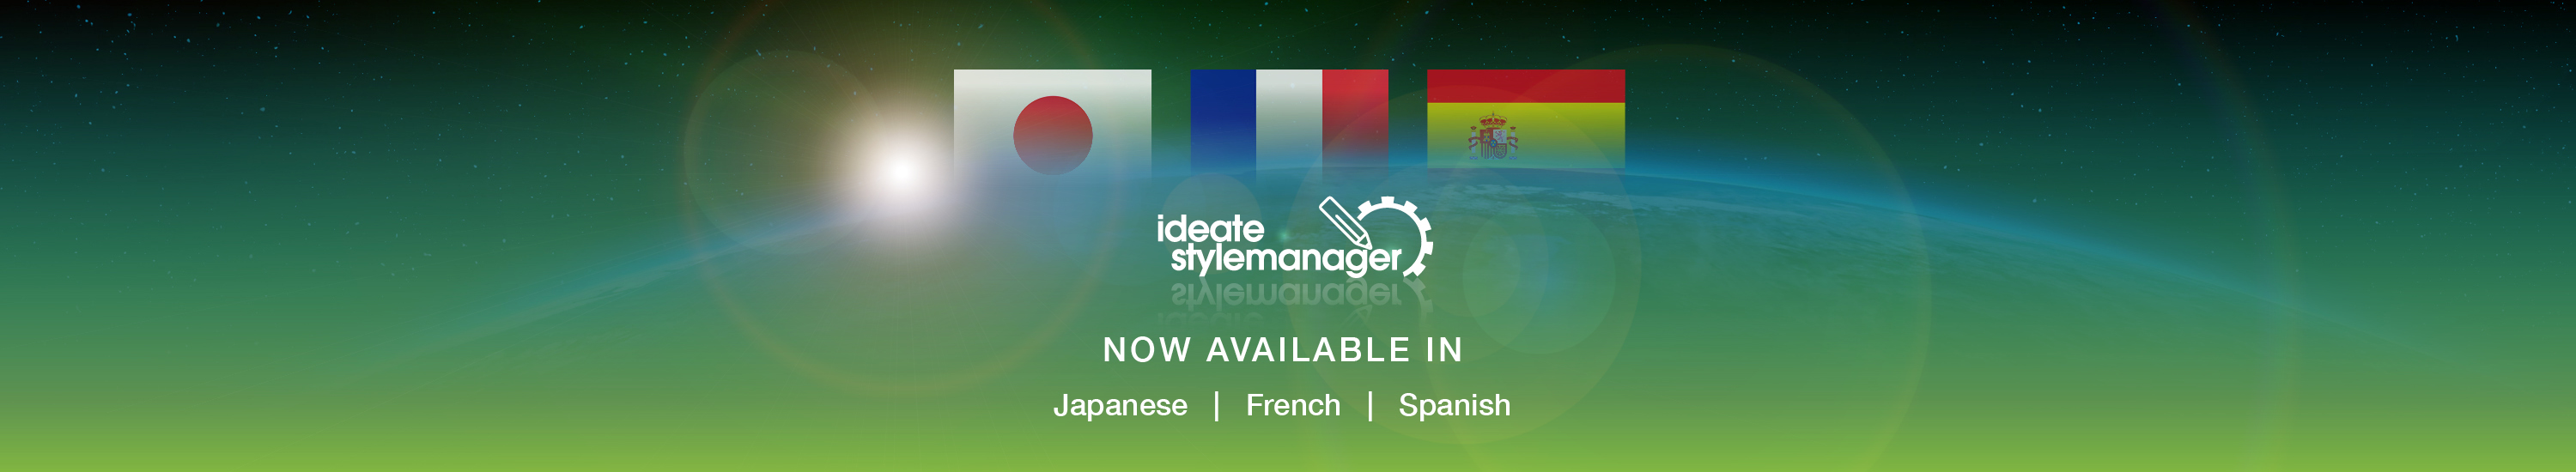 Ideate StyleManager Now Available in Japanese, Spanish and French